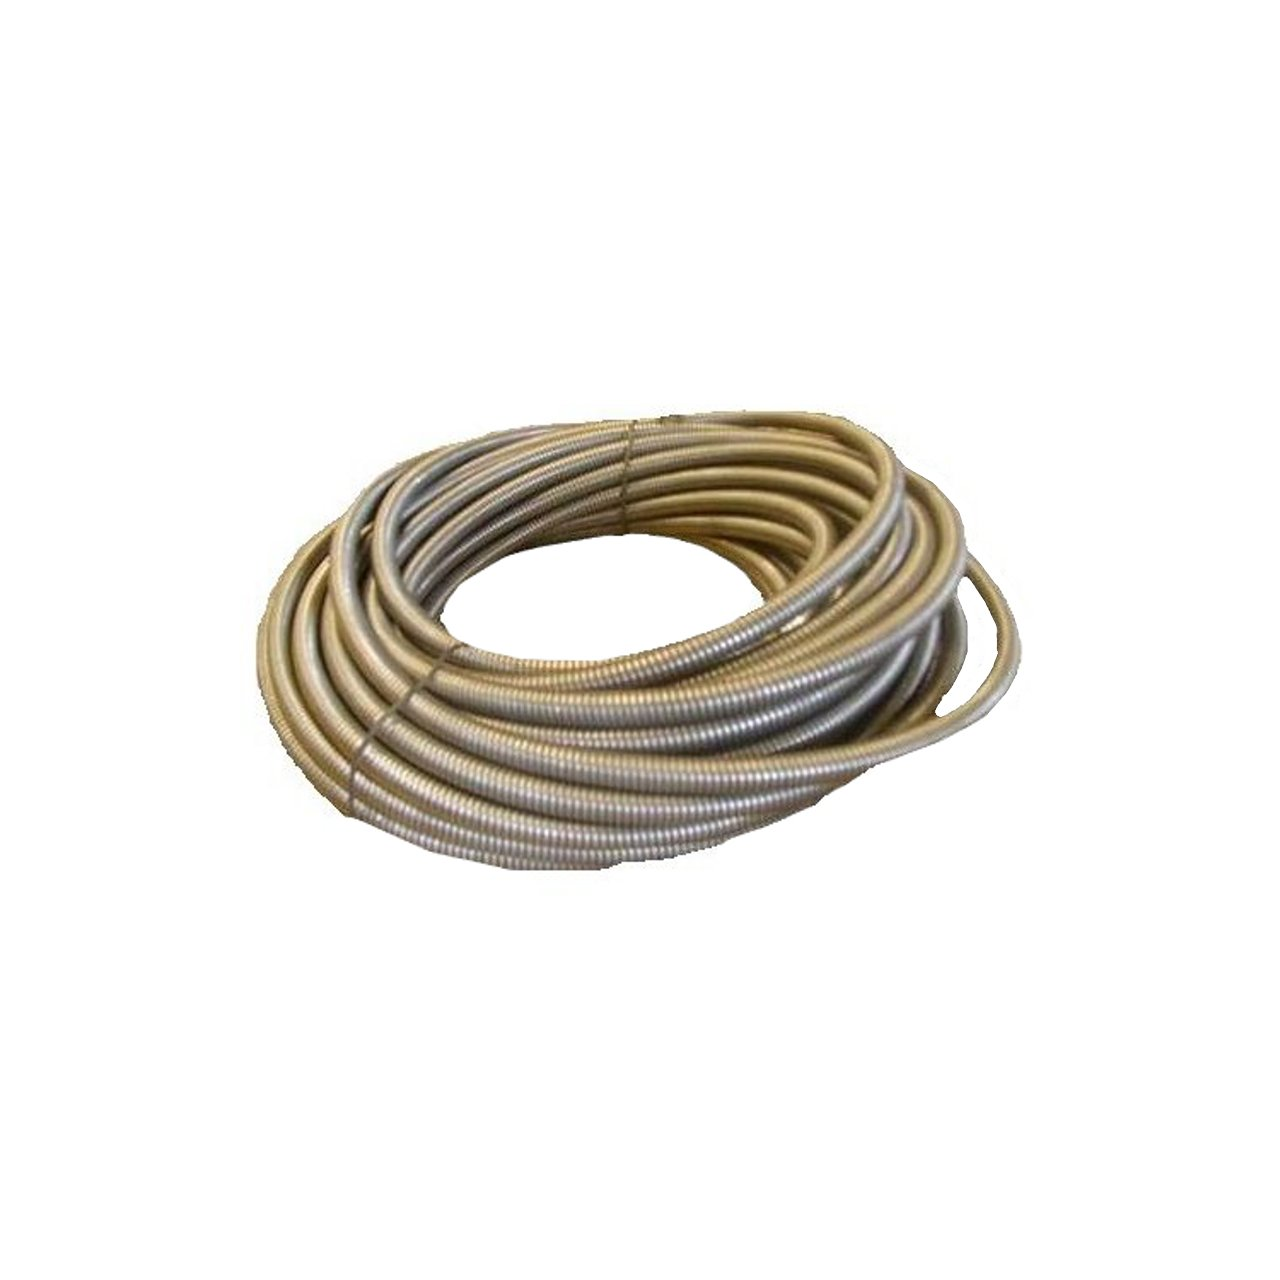 General Wire Spring GIDDS-214232 50EM2 by General Wire Spring (Image #1)